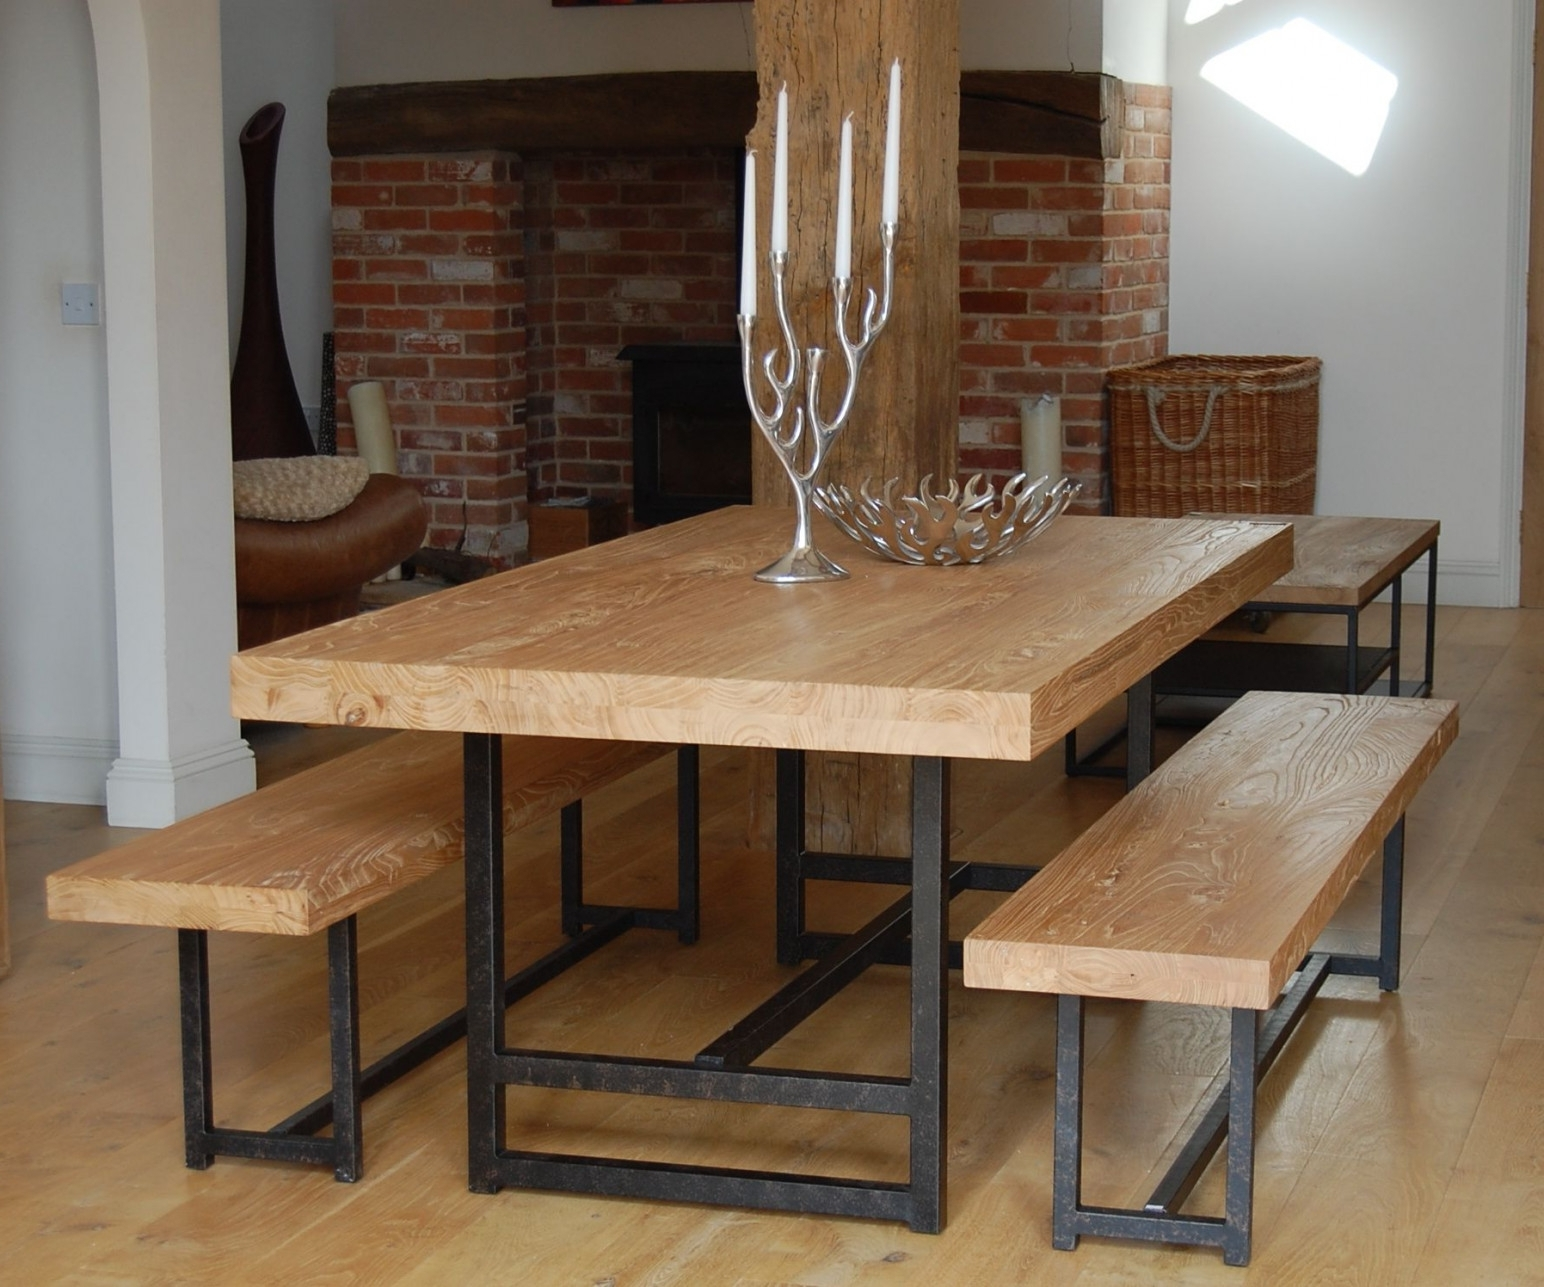 Dining Tables: Marvellous Narrow Dining Table With Bench Thin Dining With Regard To Most Recent Thin Long Dining Tables (Gallery 15 of 25)